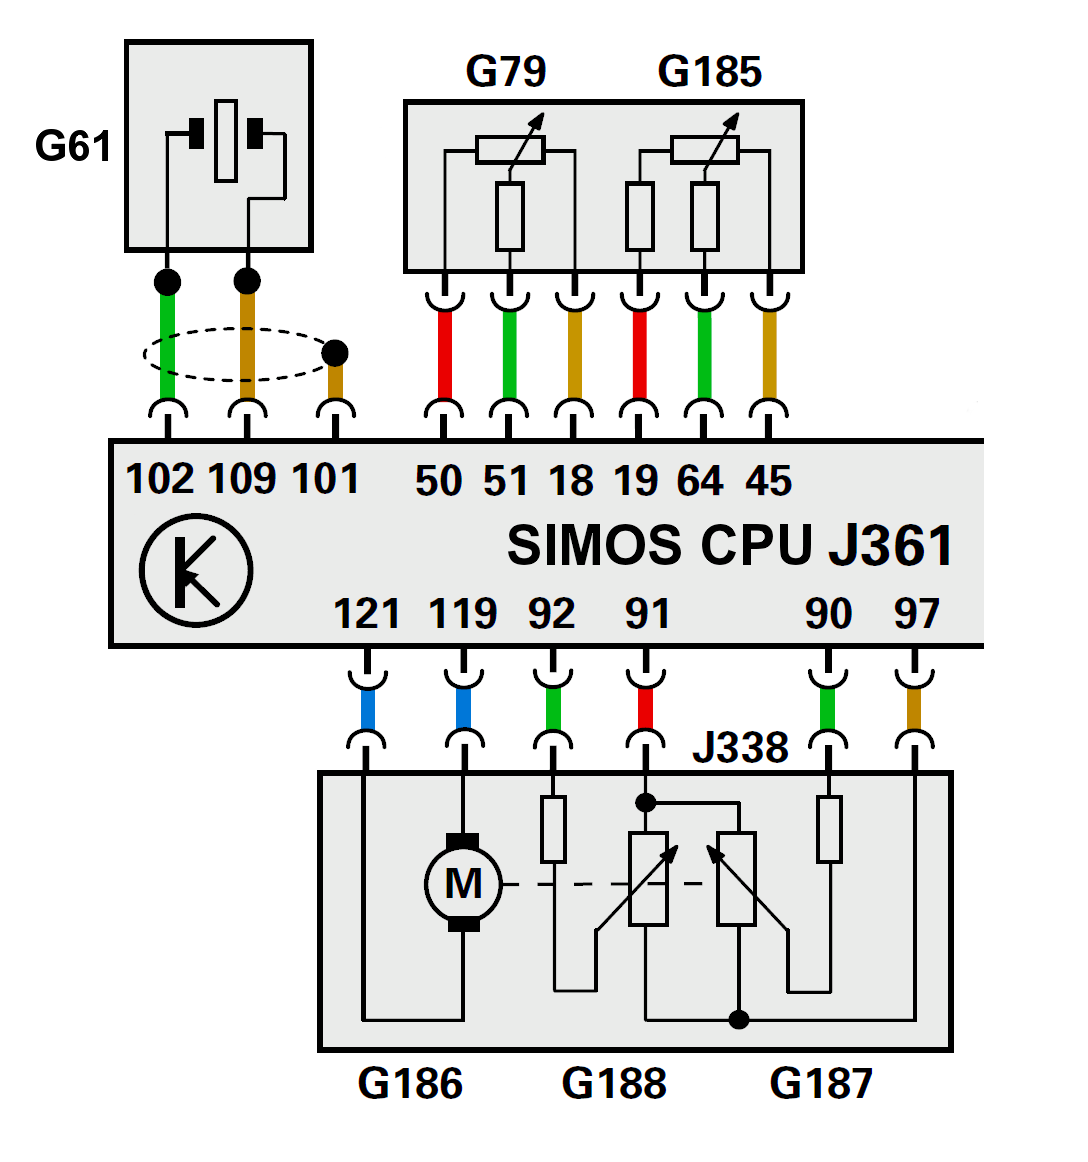 hight resolution of siemens simos ecu j361 with pin connections